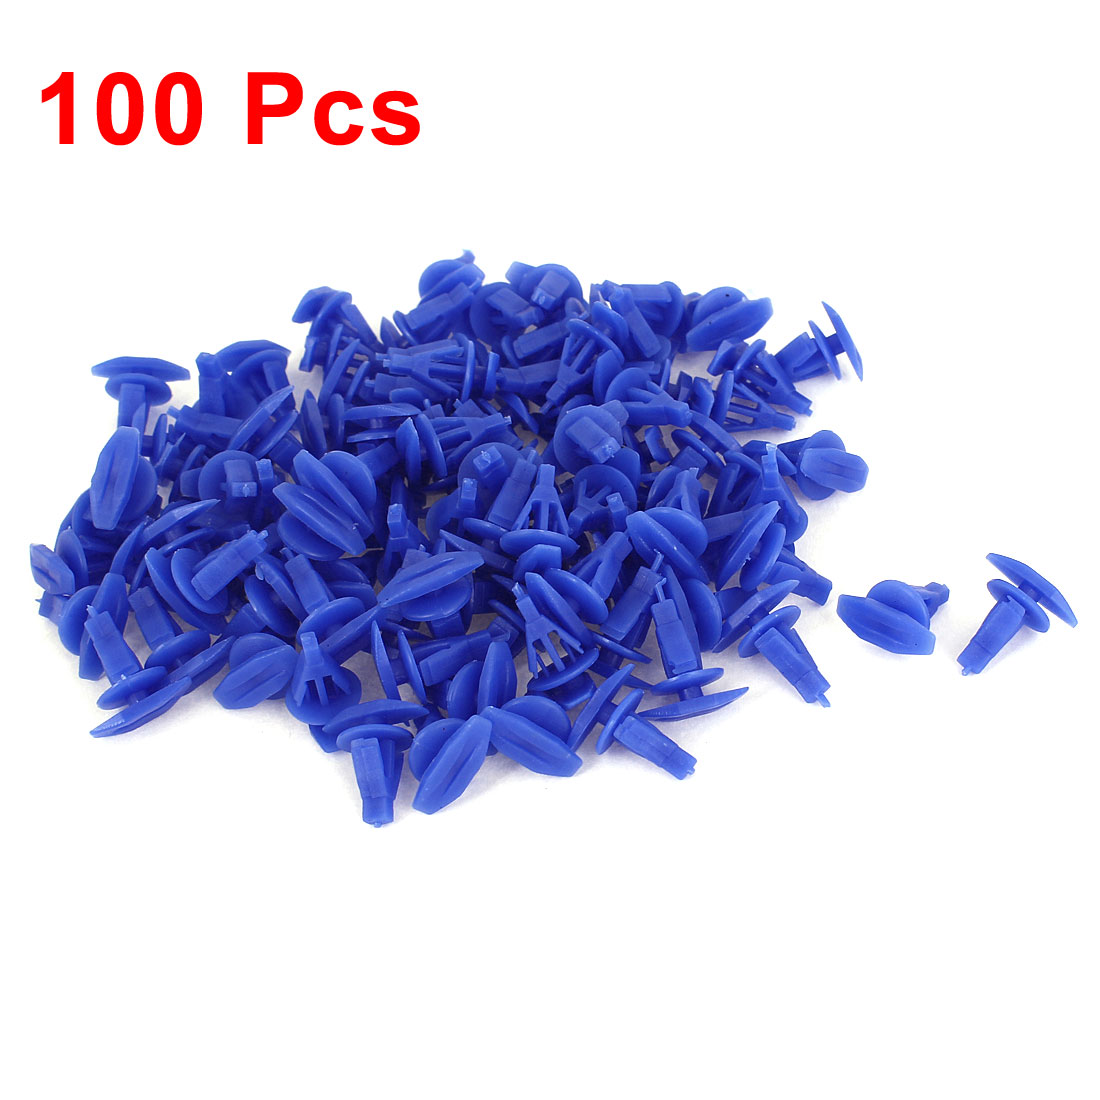 100 Pcs Blue Plastic Rivet Trim Fastener Moulding Clips 7mm x 9mm x 12mm